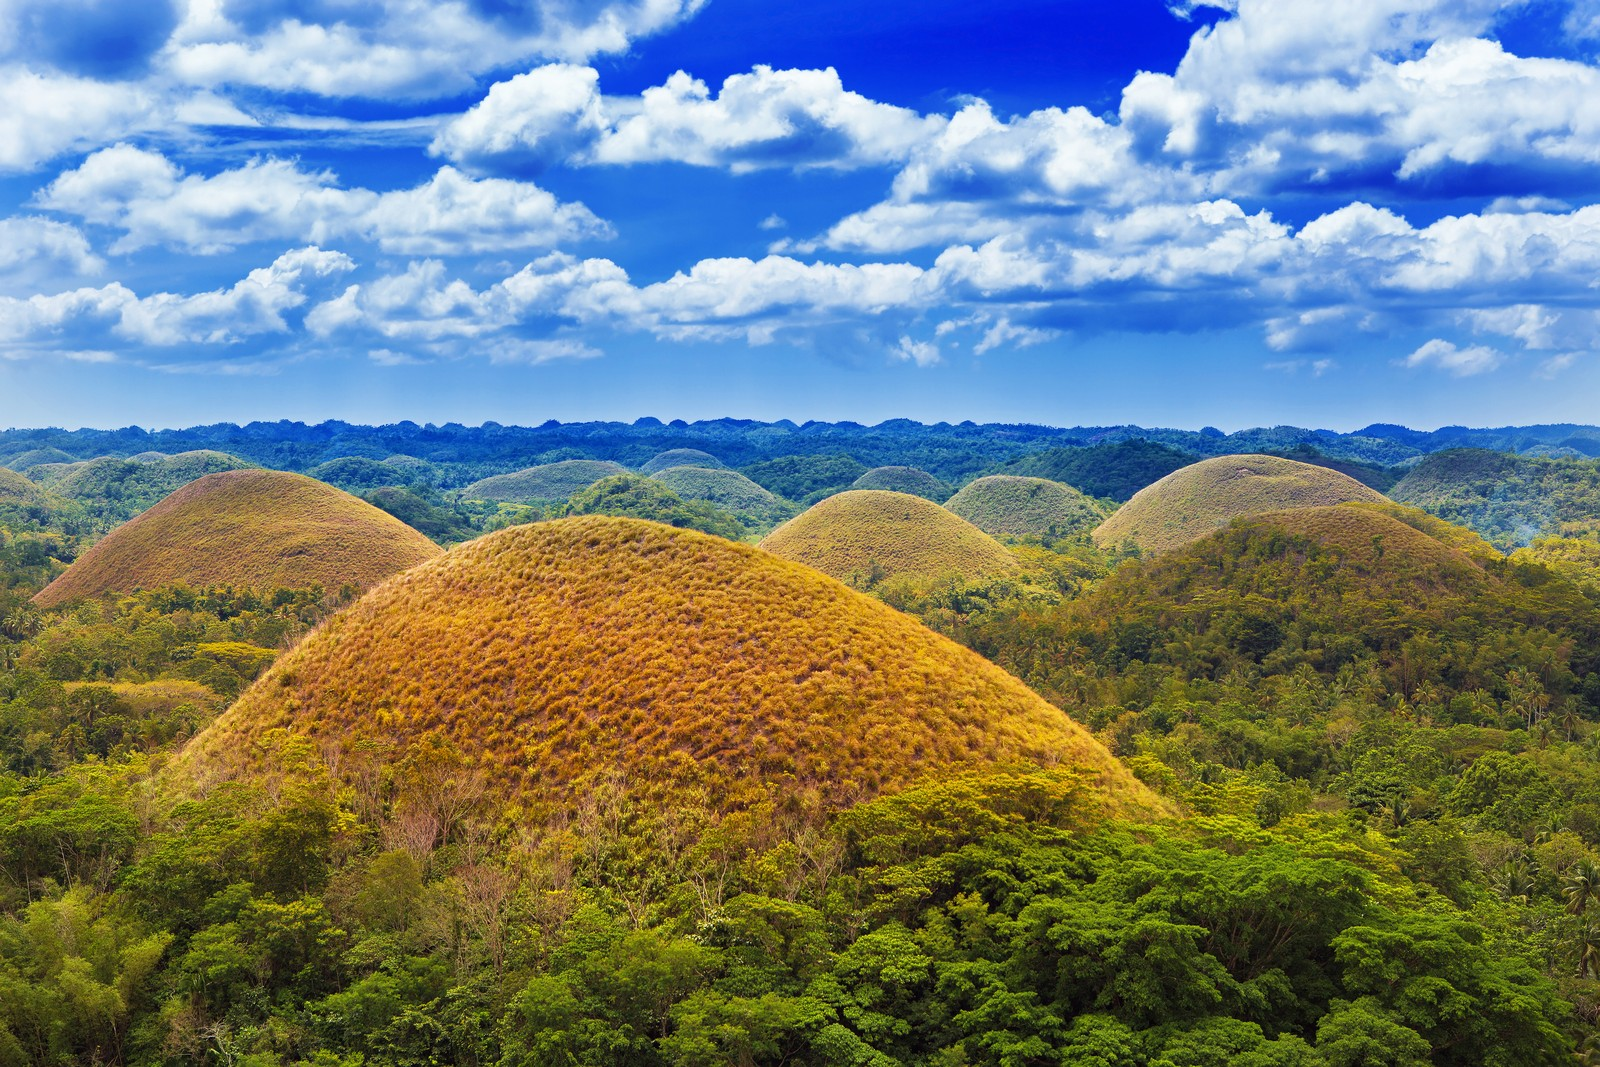 A view of Bohol's Chocolate Hills